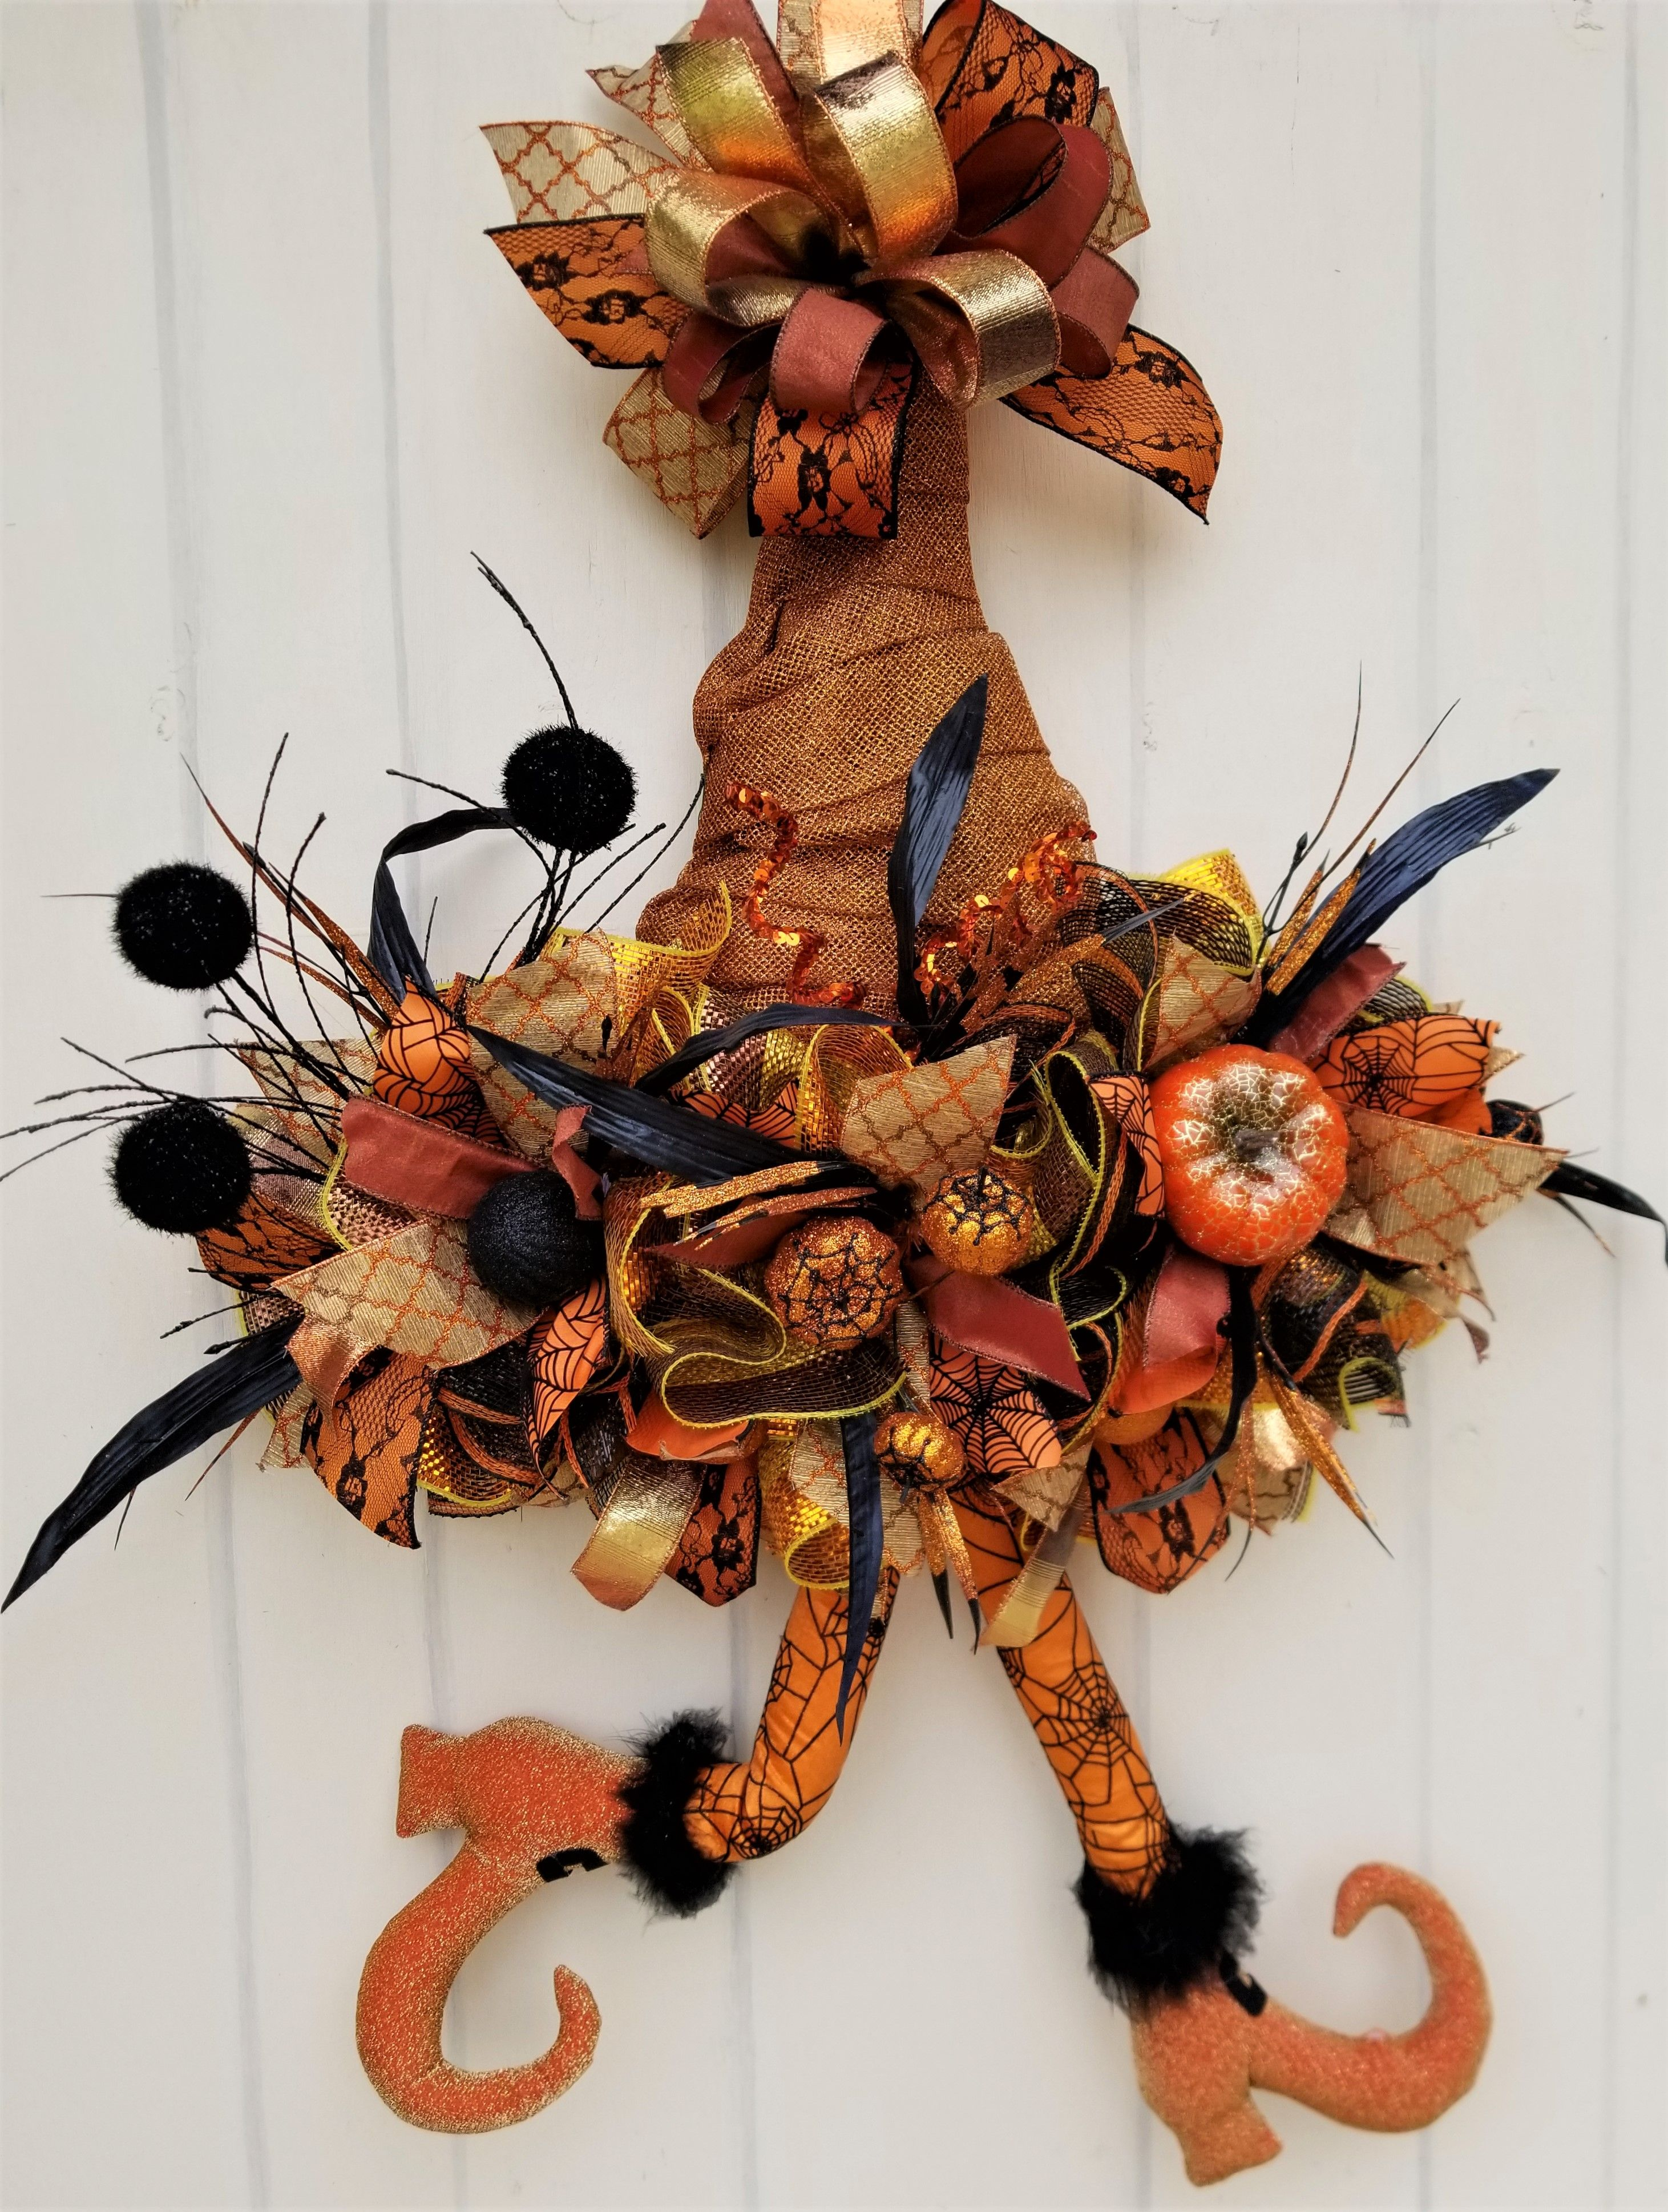 Picture Frames Whimsical Halloween Wreaths 7